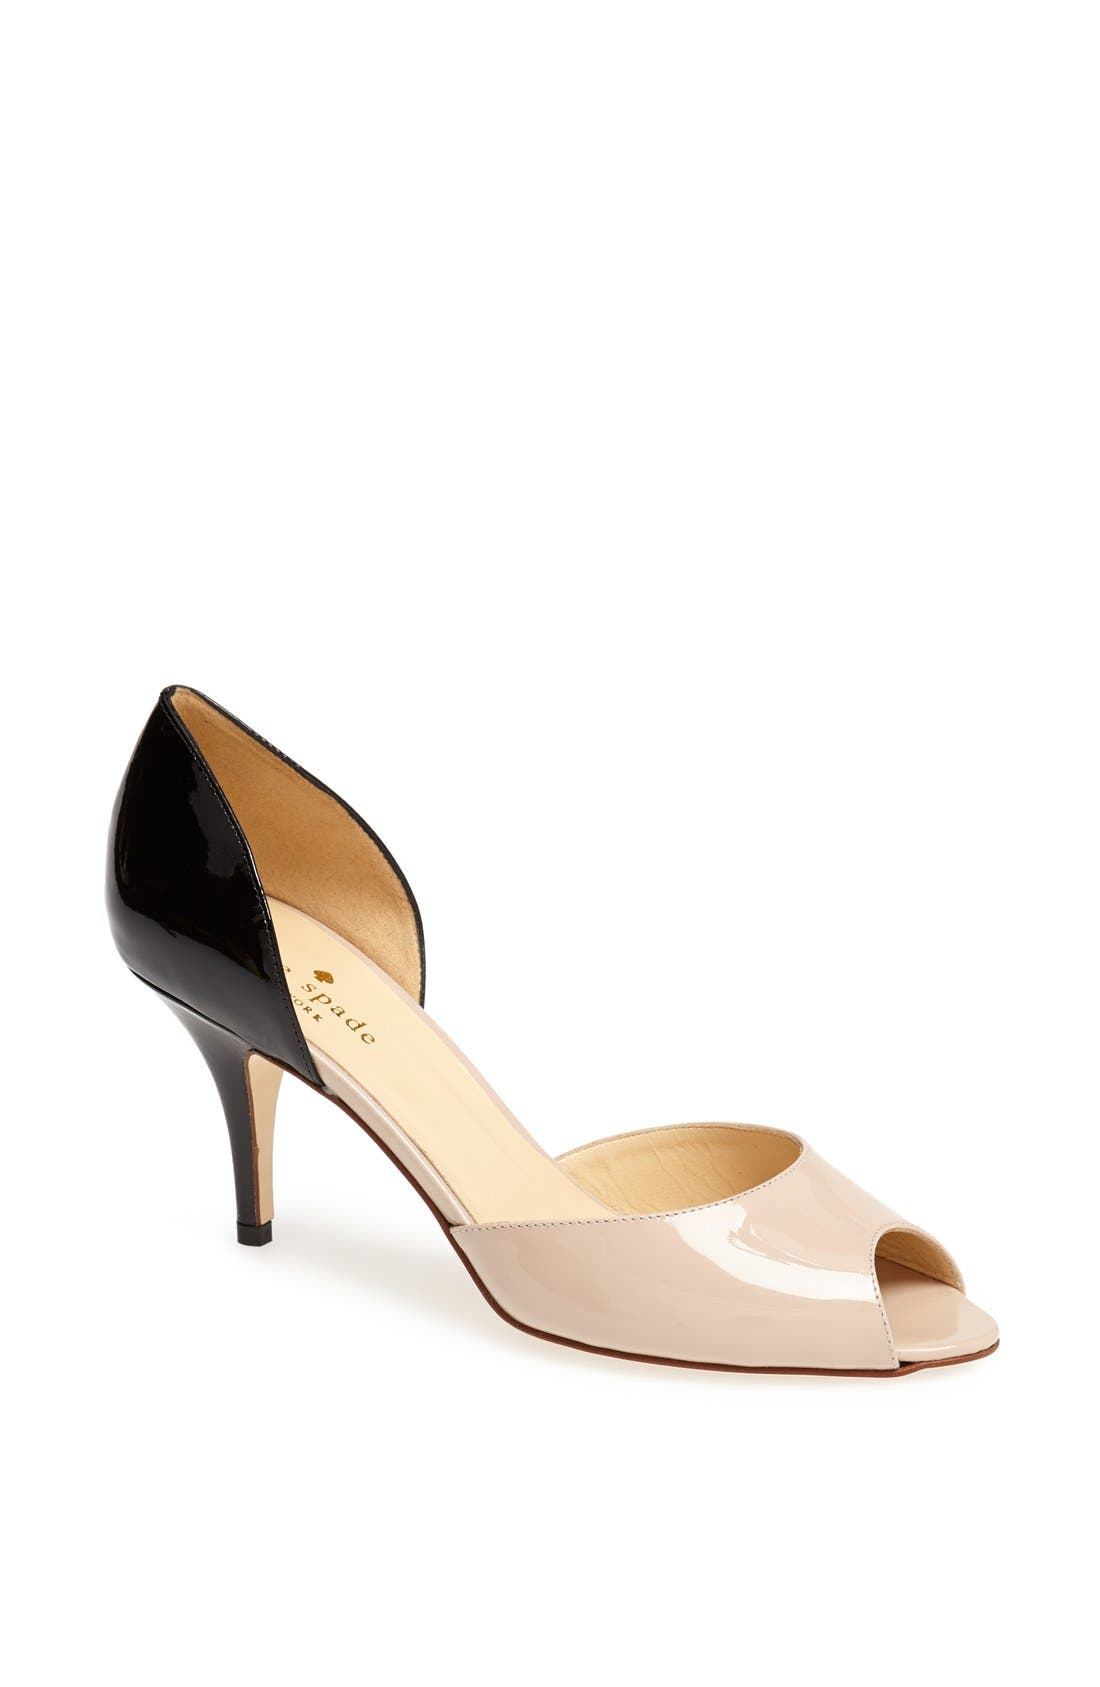 Main Image - kate spade new york 'sage' pump